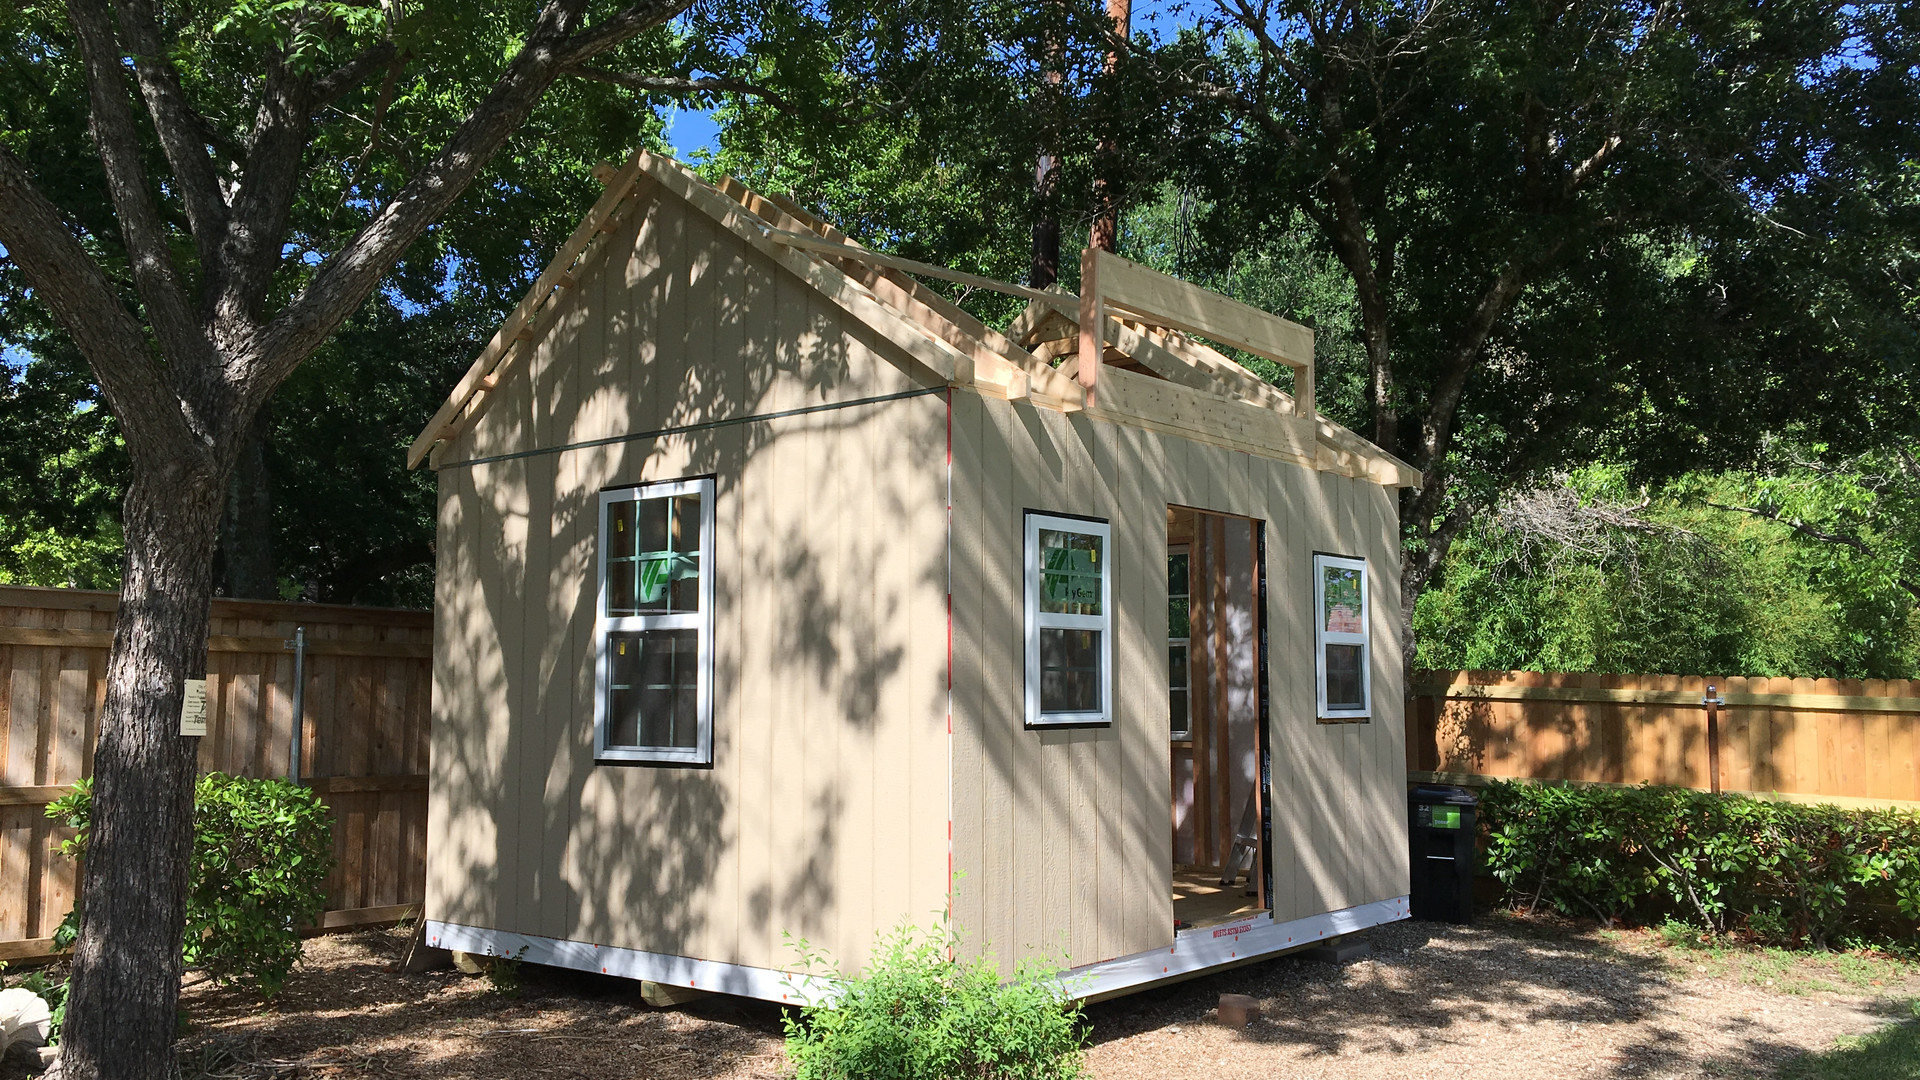 SHE-SHED PROJECT (Currently in production)